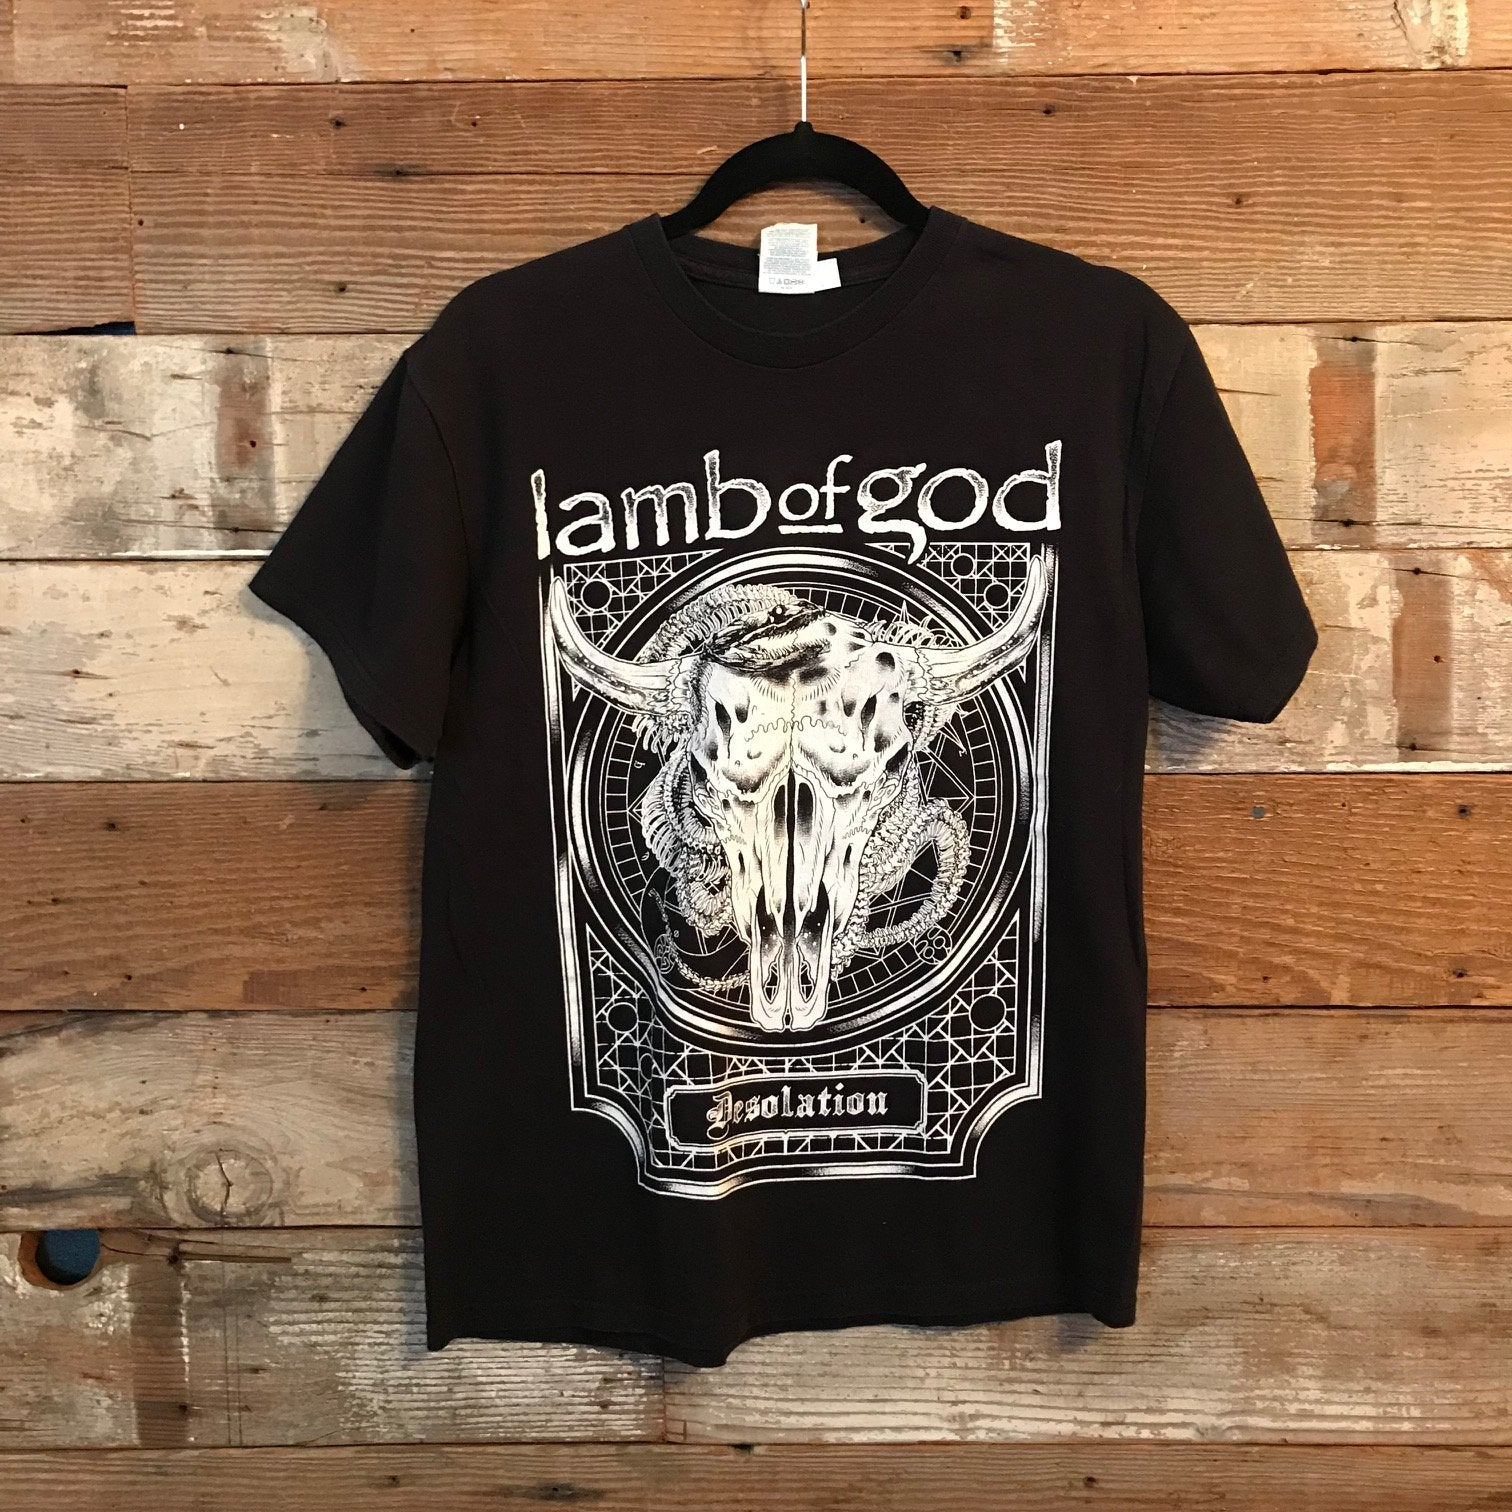 LAMB OF GOD - Desolation T-shirt (M)